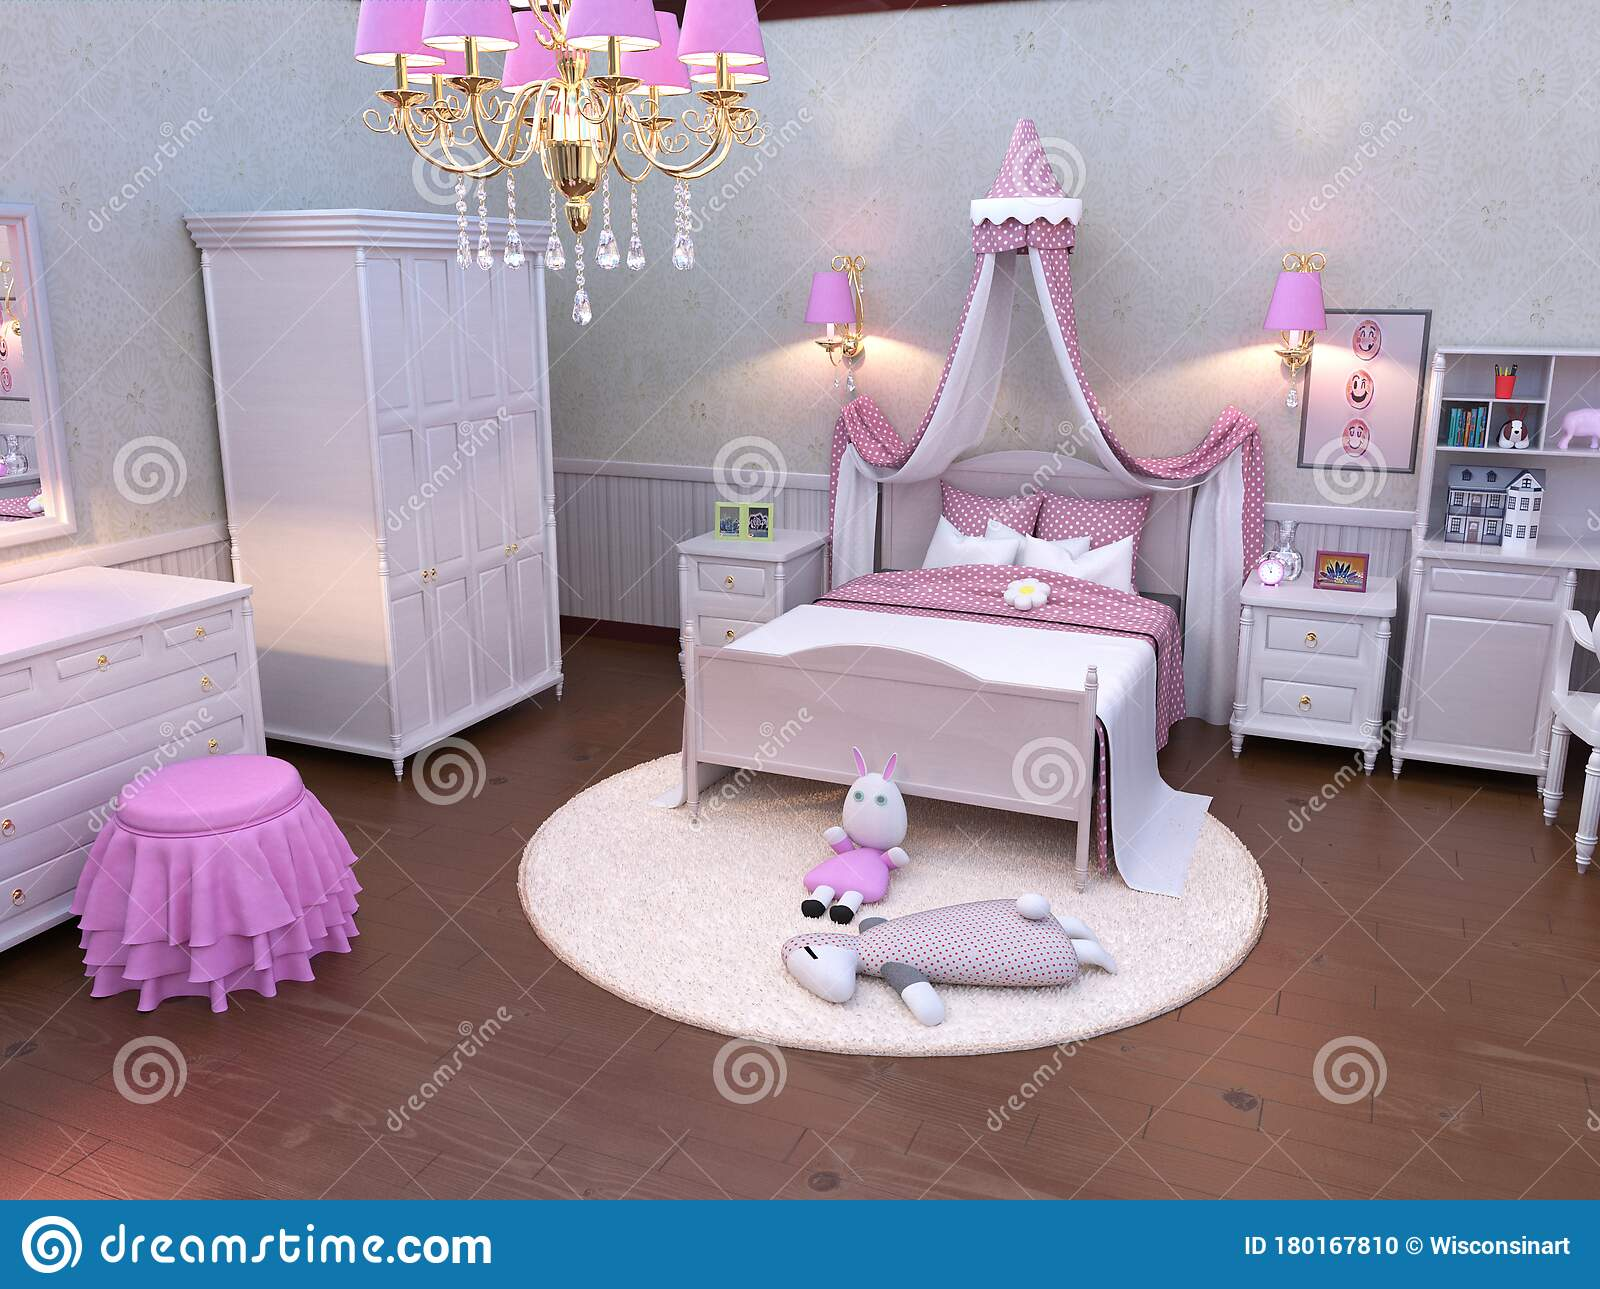 Pink Young Children Girl Bedroom Home Stock Photo Image Of Pink Decorated 180167810